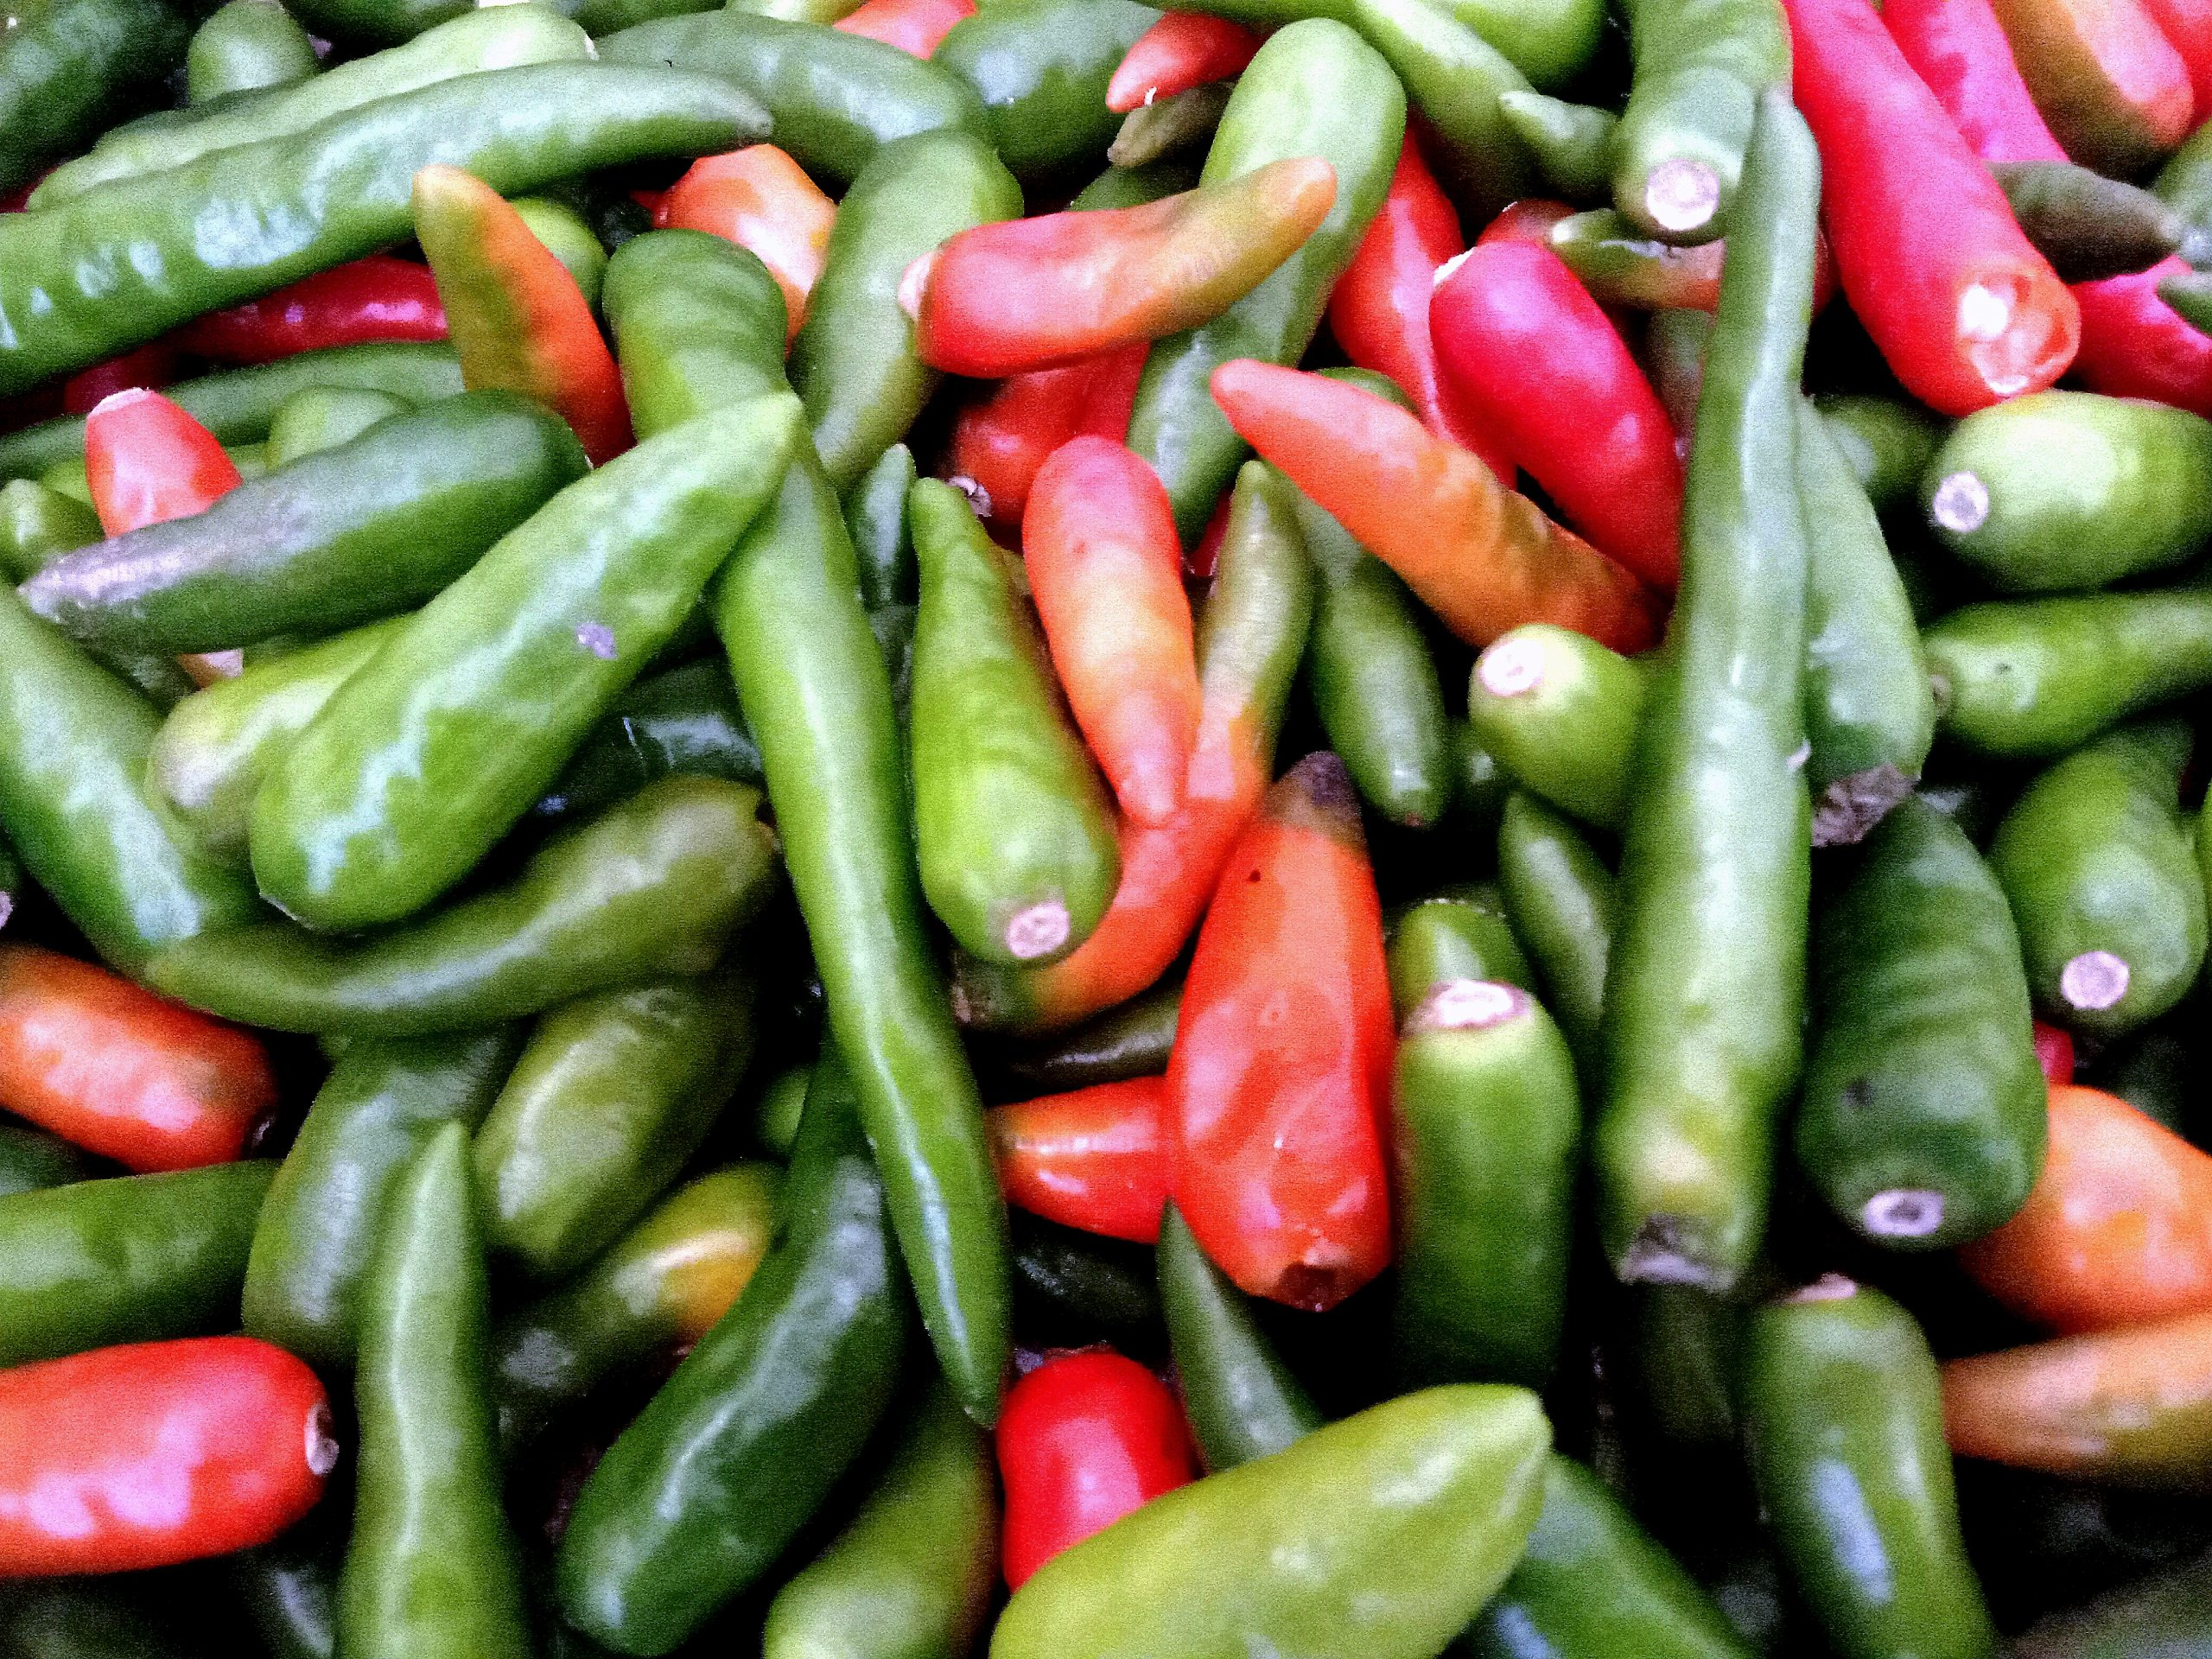 A pile of green chillies